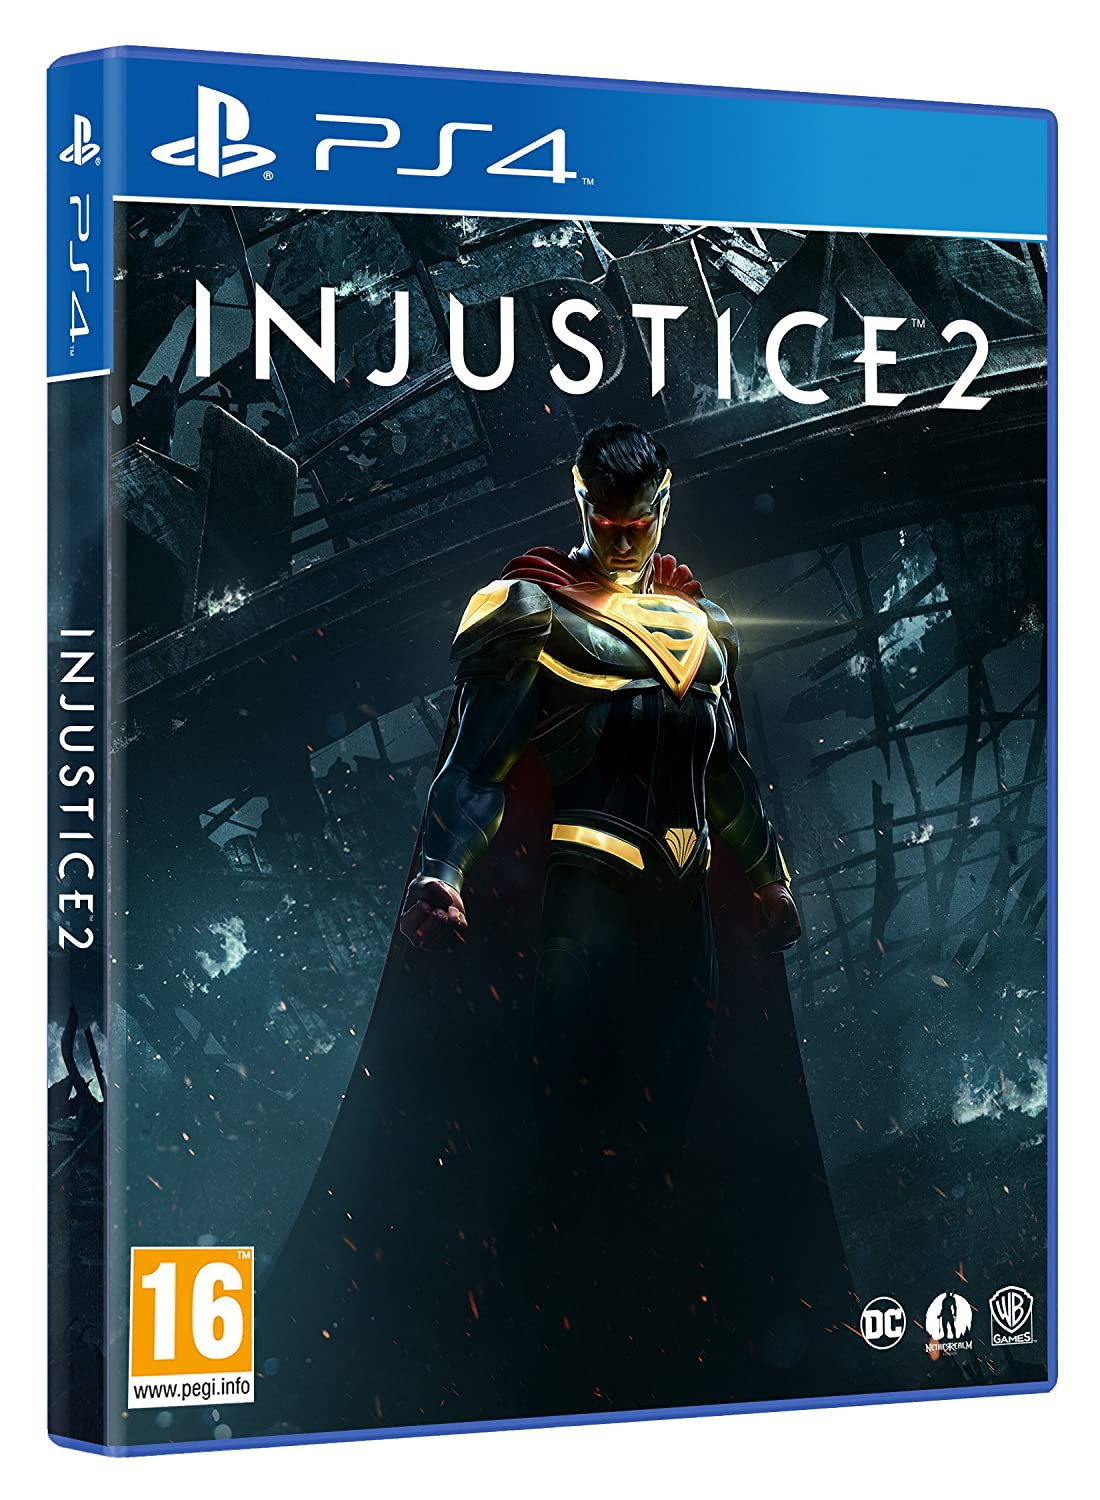 Injustice 2 Ps4 Pc Video Games Tekken 7 Foldable Fan Region 3 English